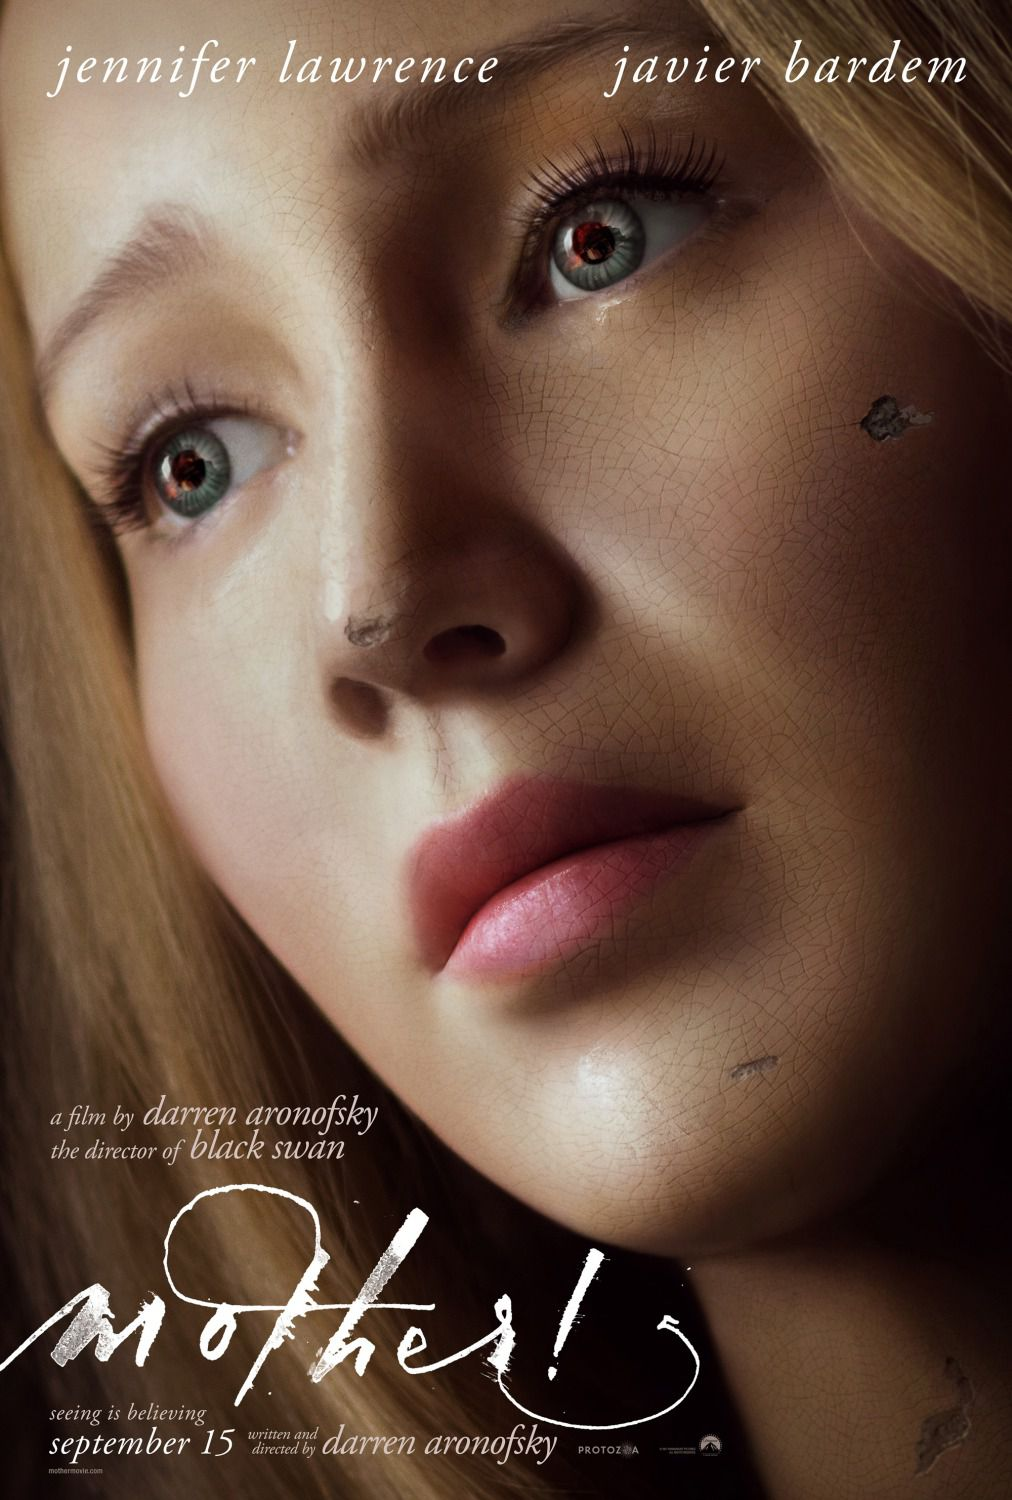 Mother - Madre - Jennifer Lawrence - Javier Bardem - film by Darren Aronofsky - poster